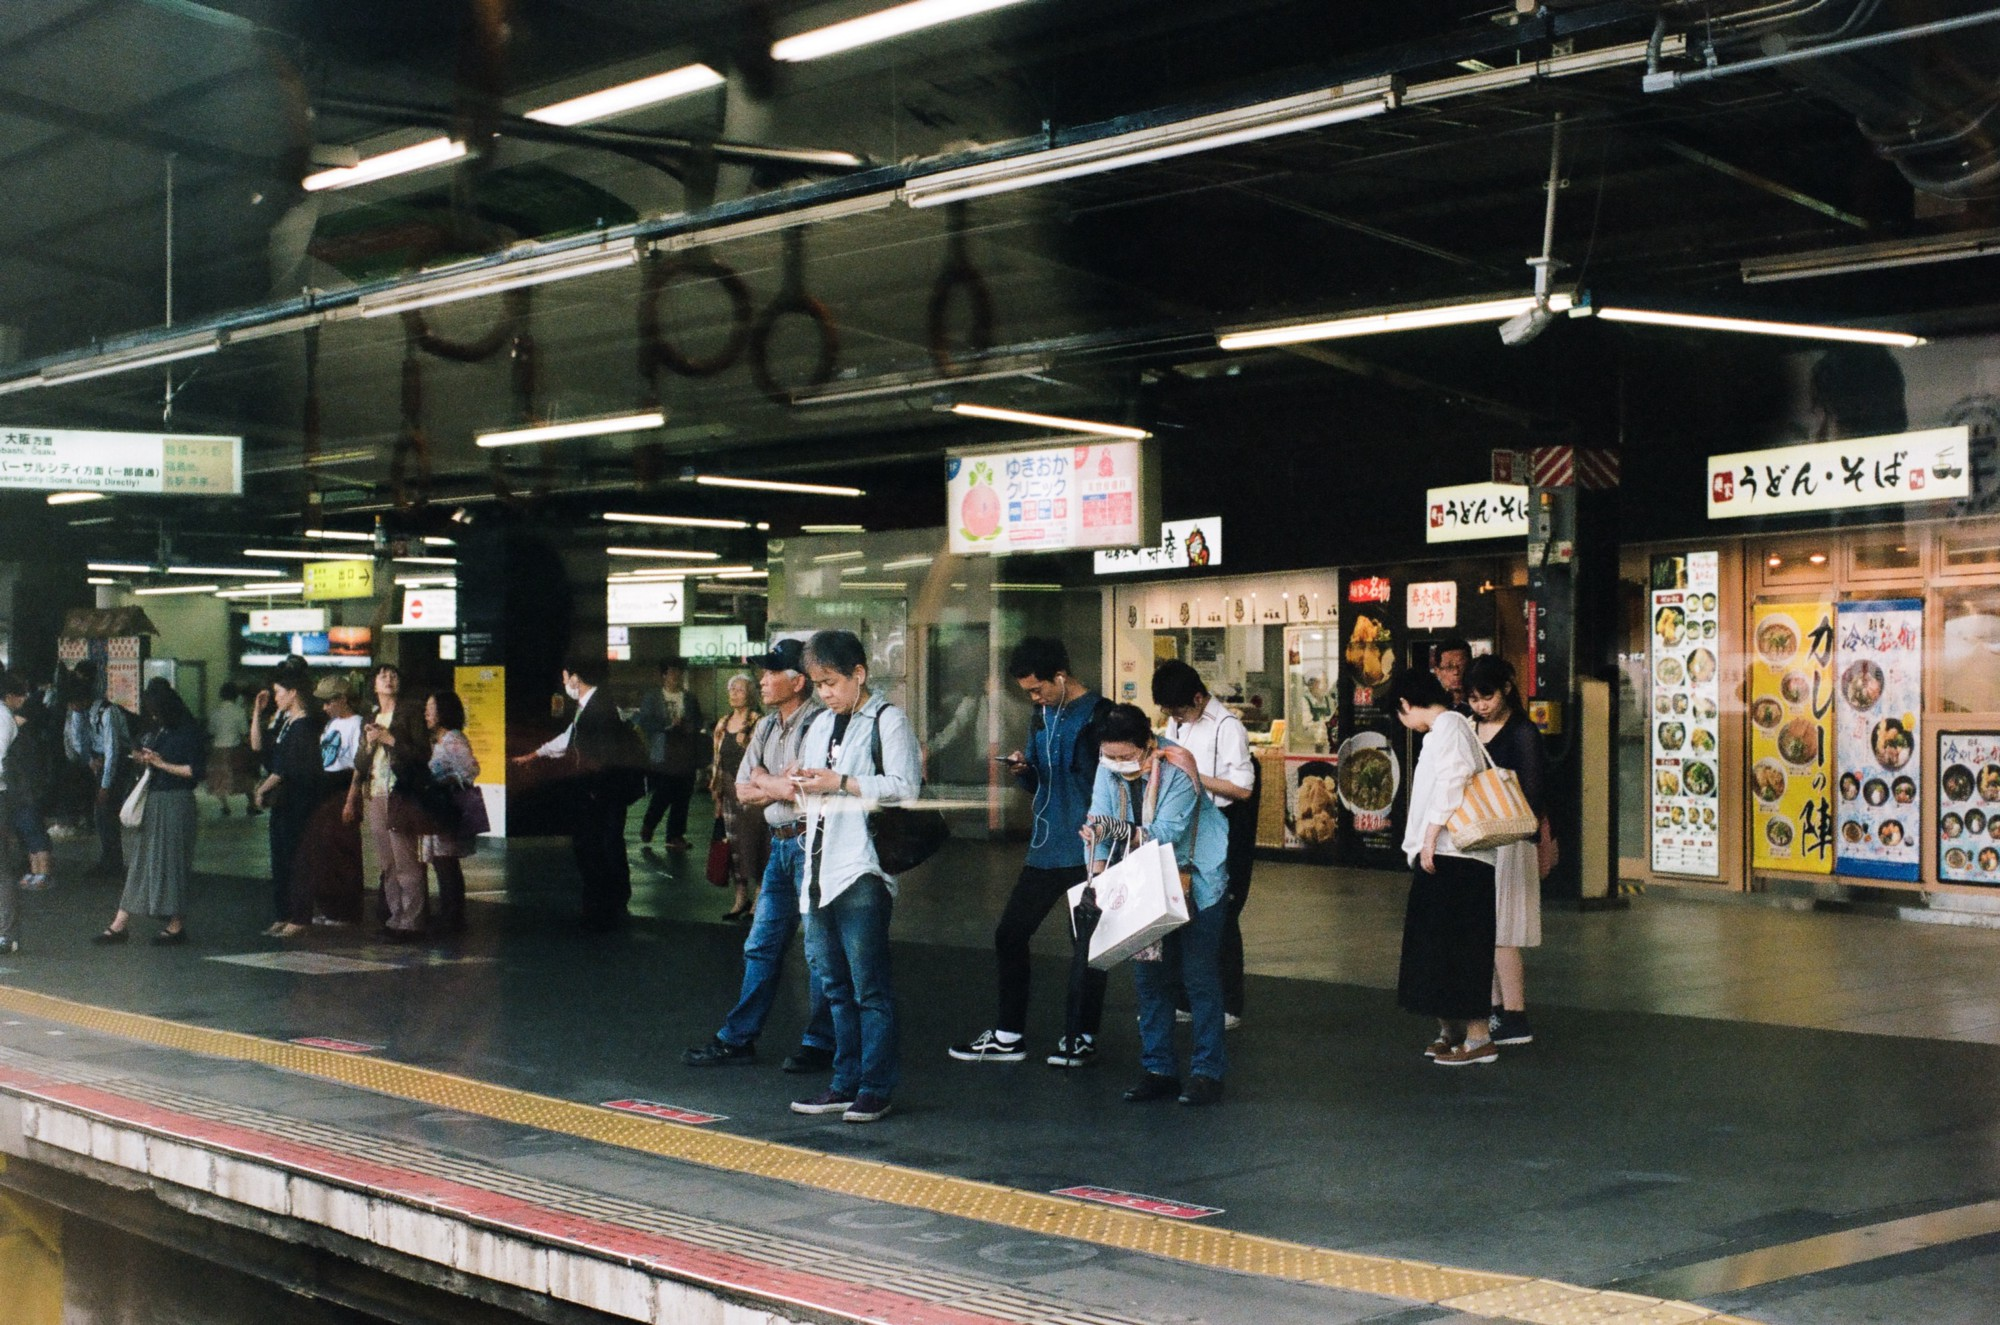 People waiting for the train at the platform in Japan.